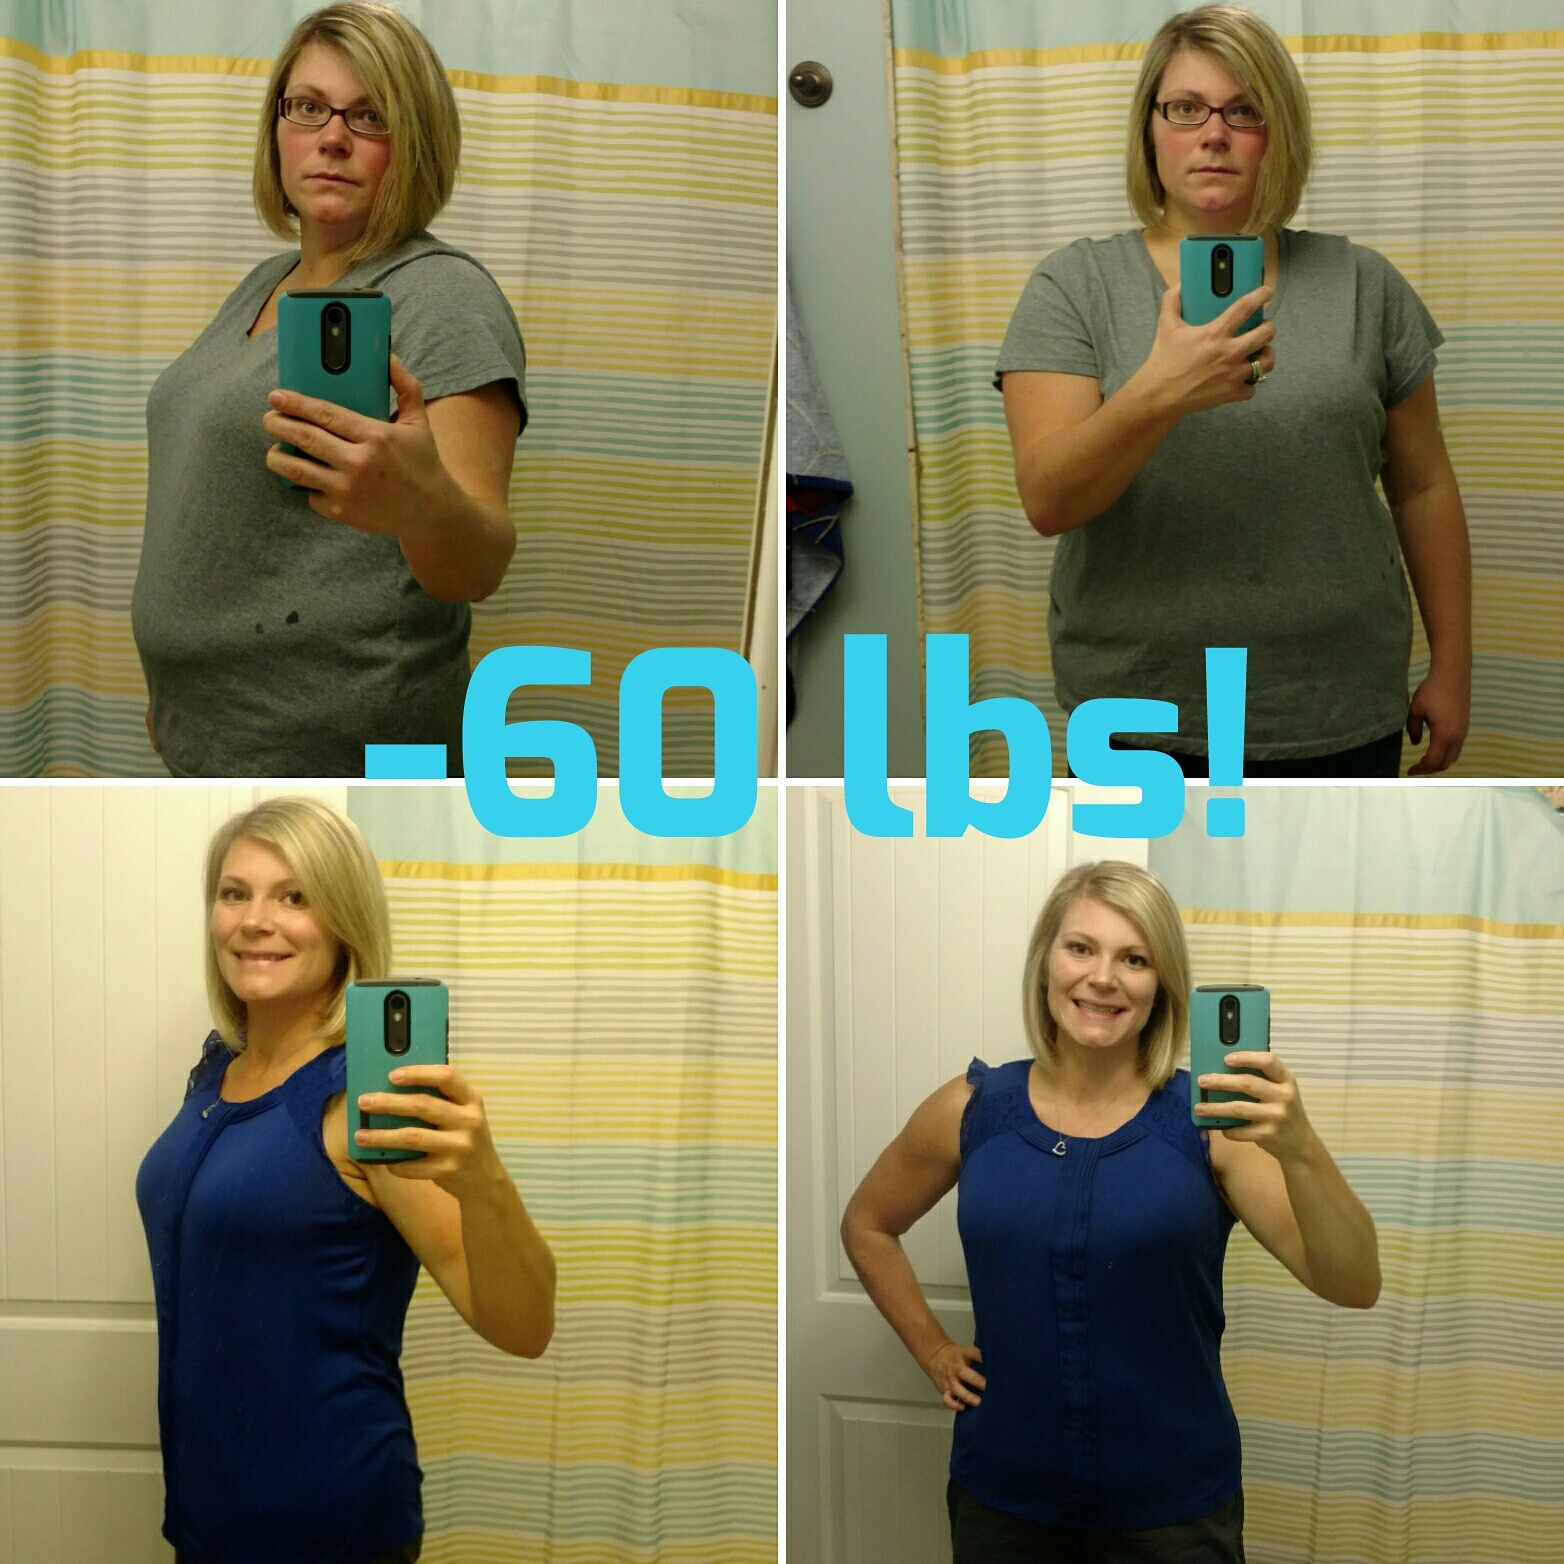 Great success story! Read before and after fitness transformation stories from women and men who hit weight loss goals and got THAT BODY with training and meal prep. Find inspiration, motivation, and workout tips | 60 Pounds Lost: Whole30 and bootcamp changed my life